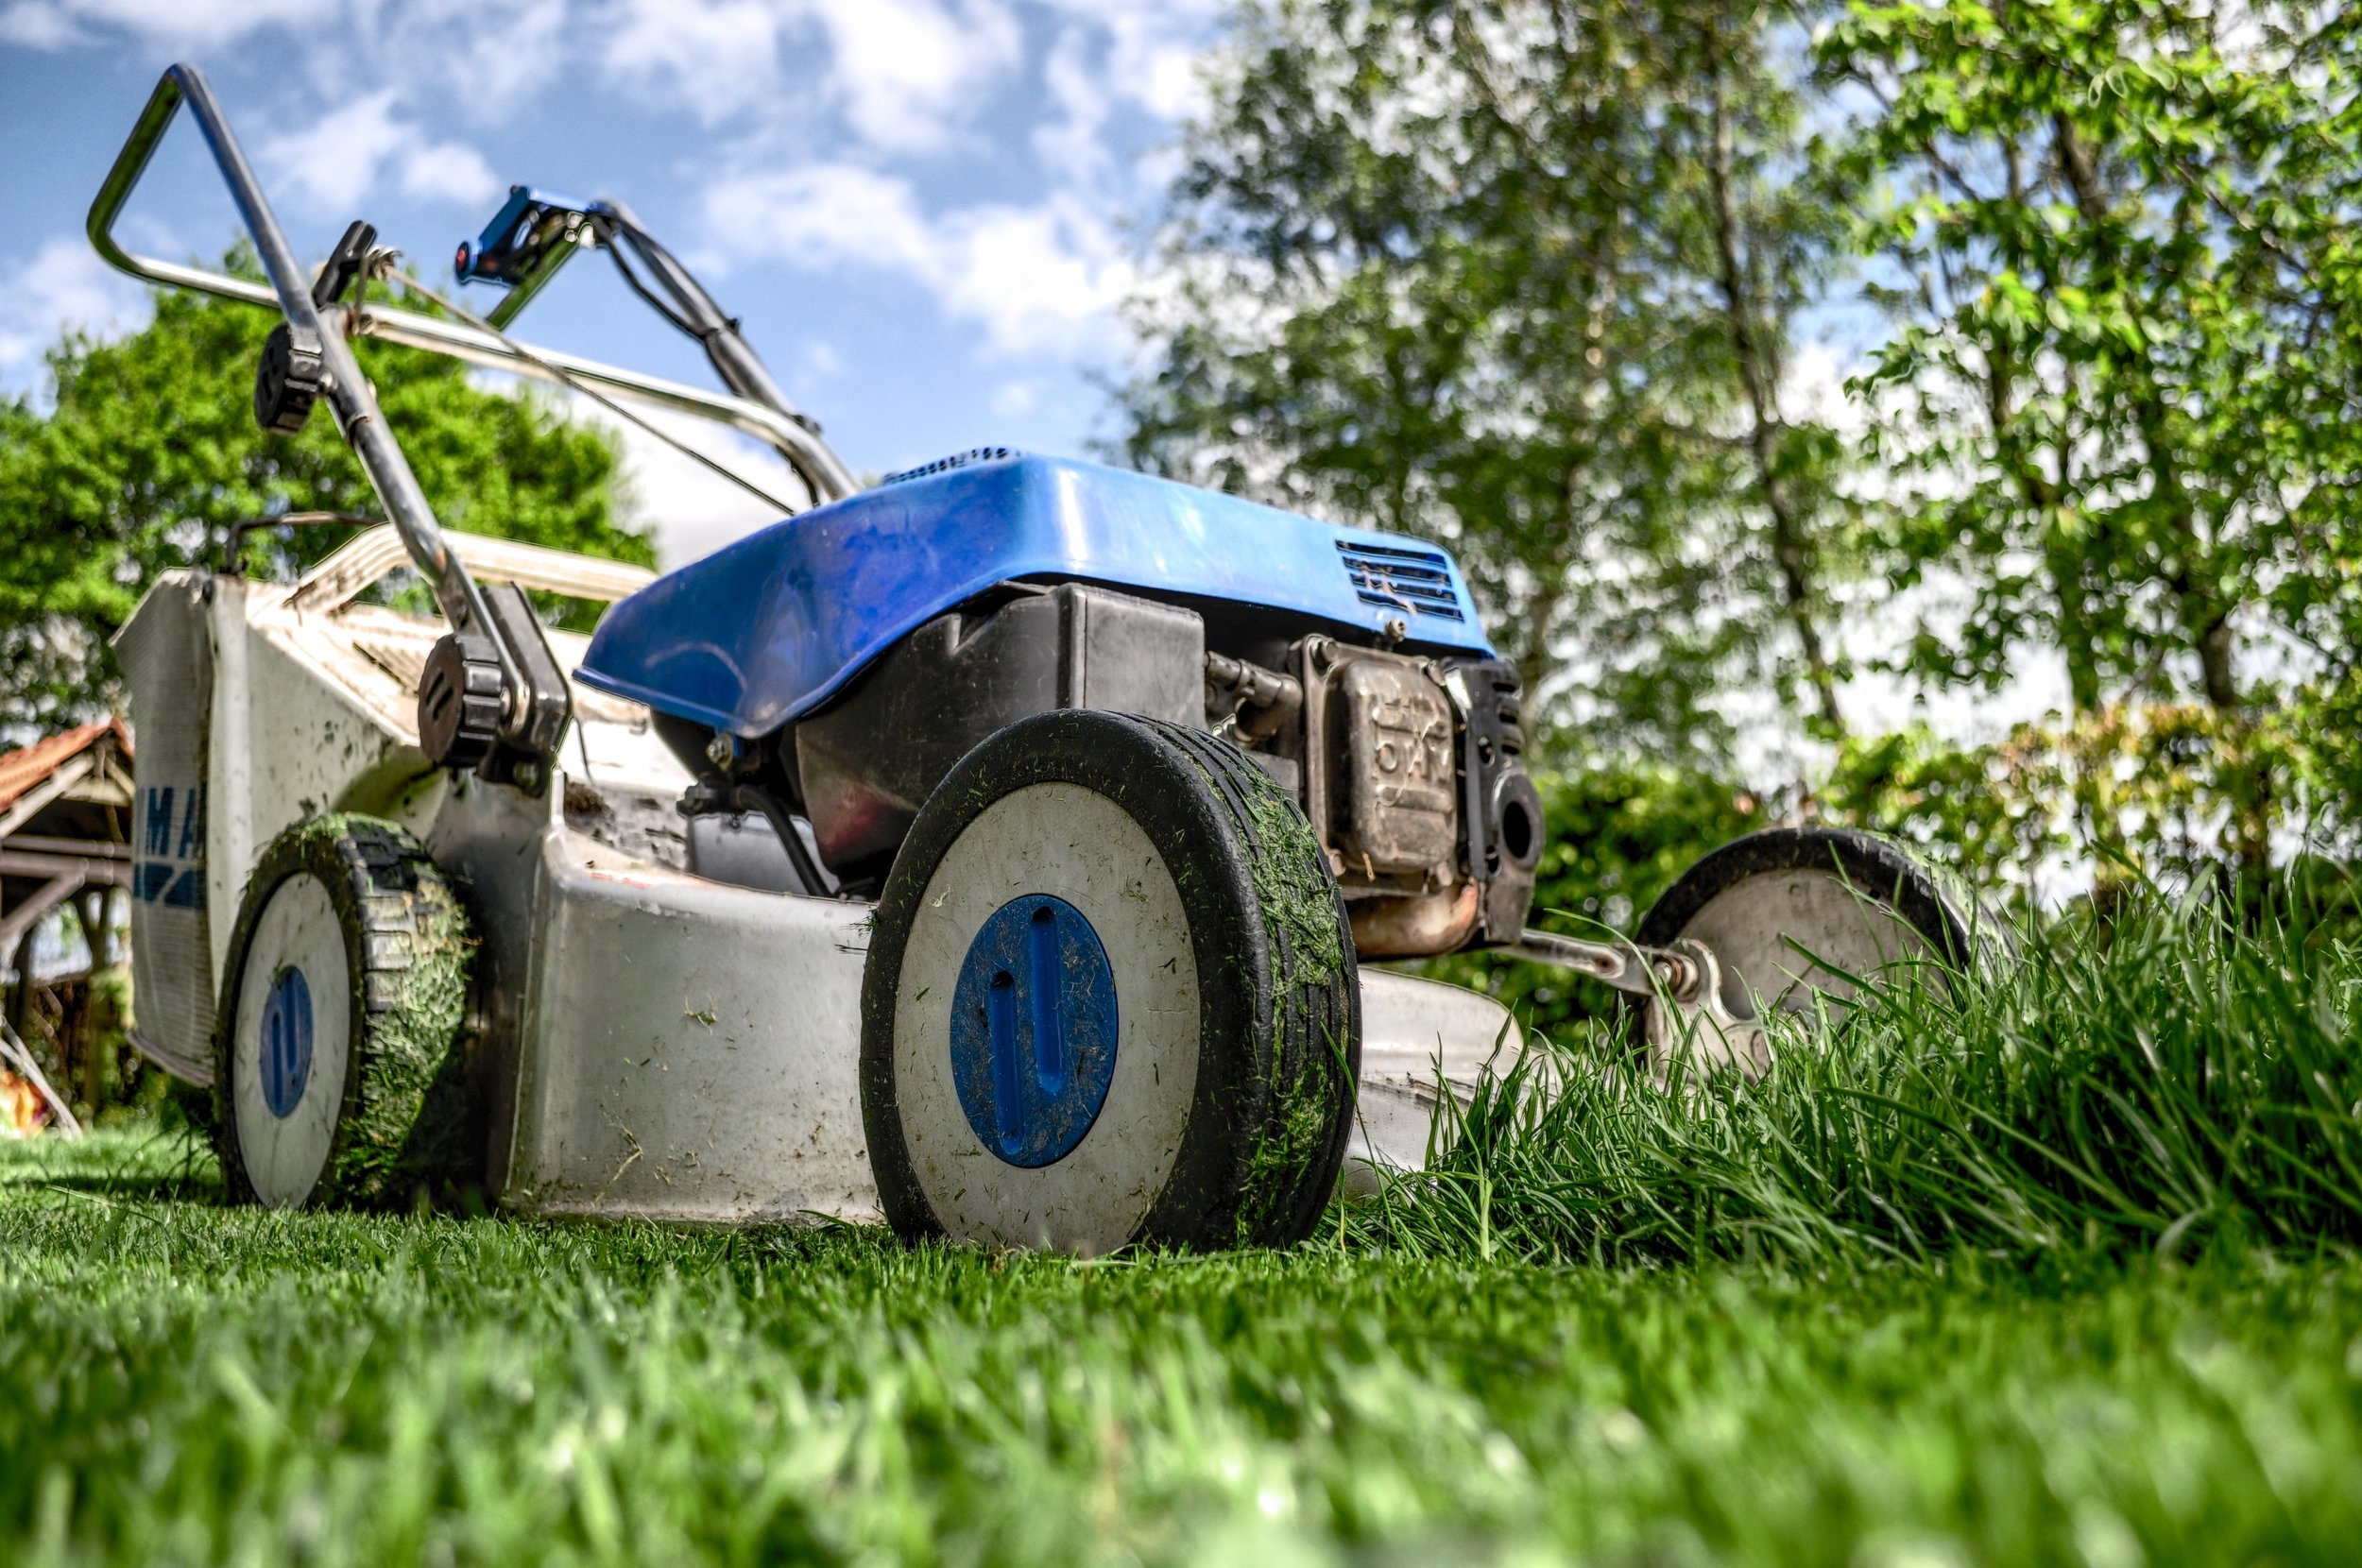 Lawn Mower London Ontario To Do 7 Clean And Sharpen Garden Tools London Renovations In